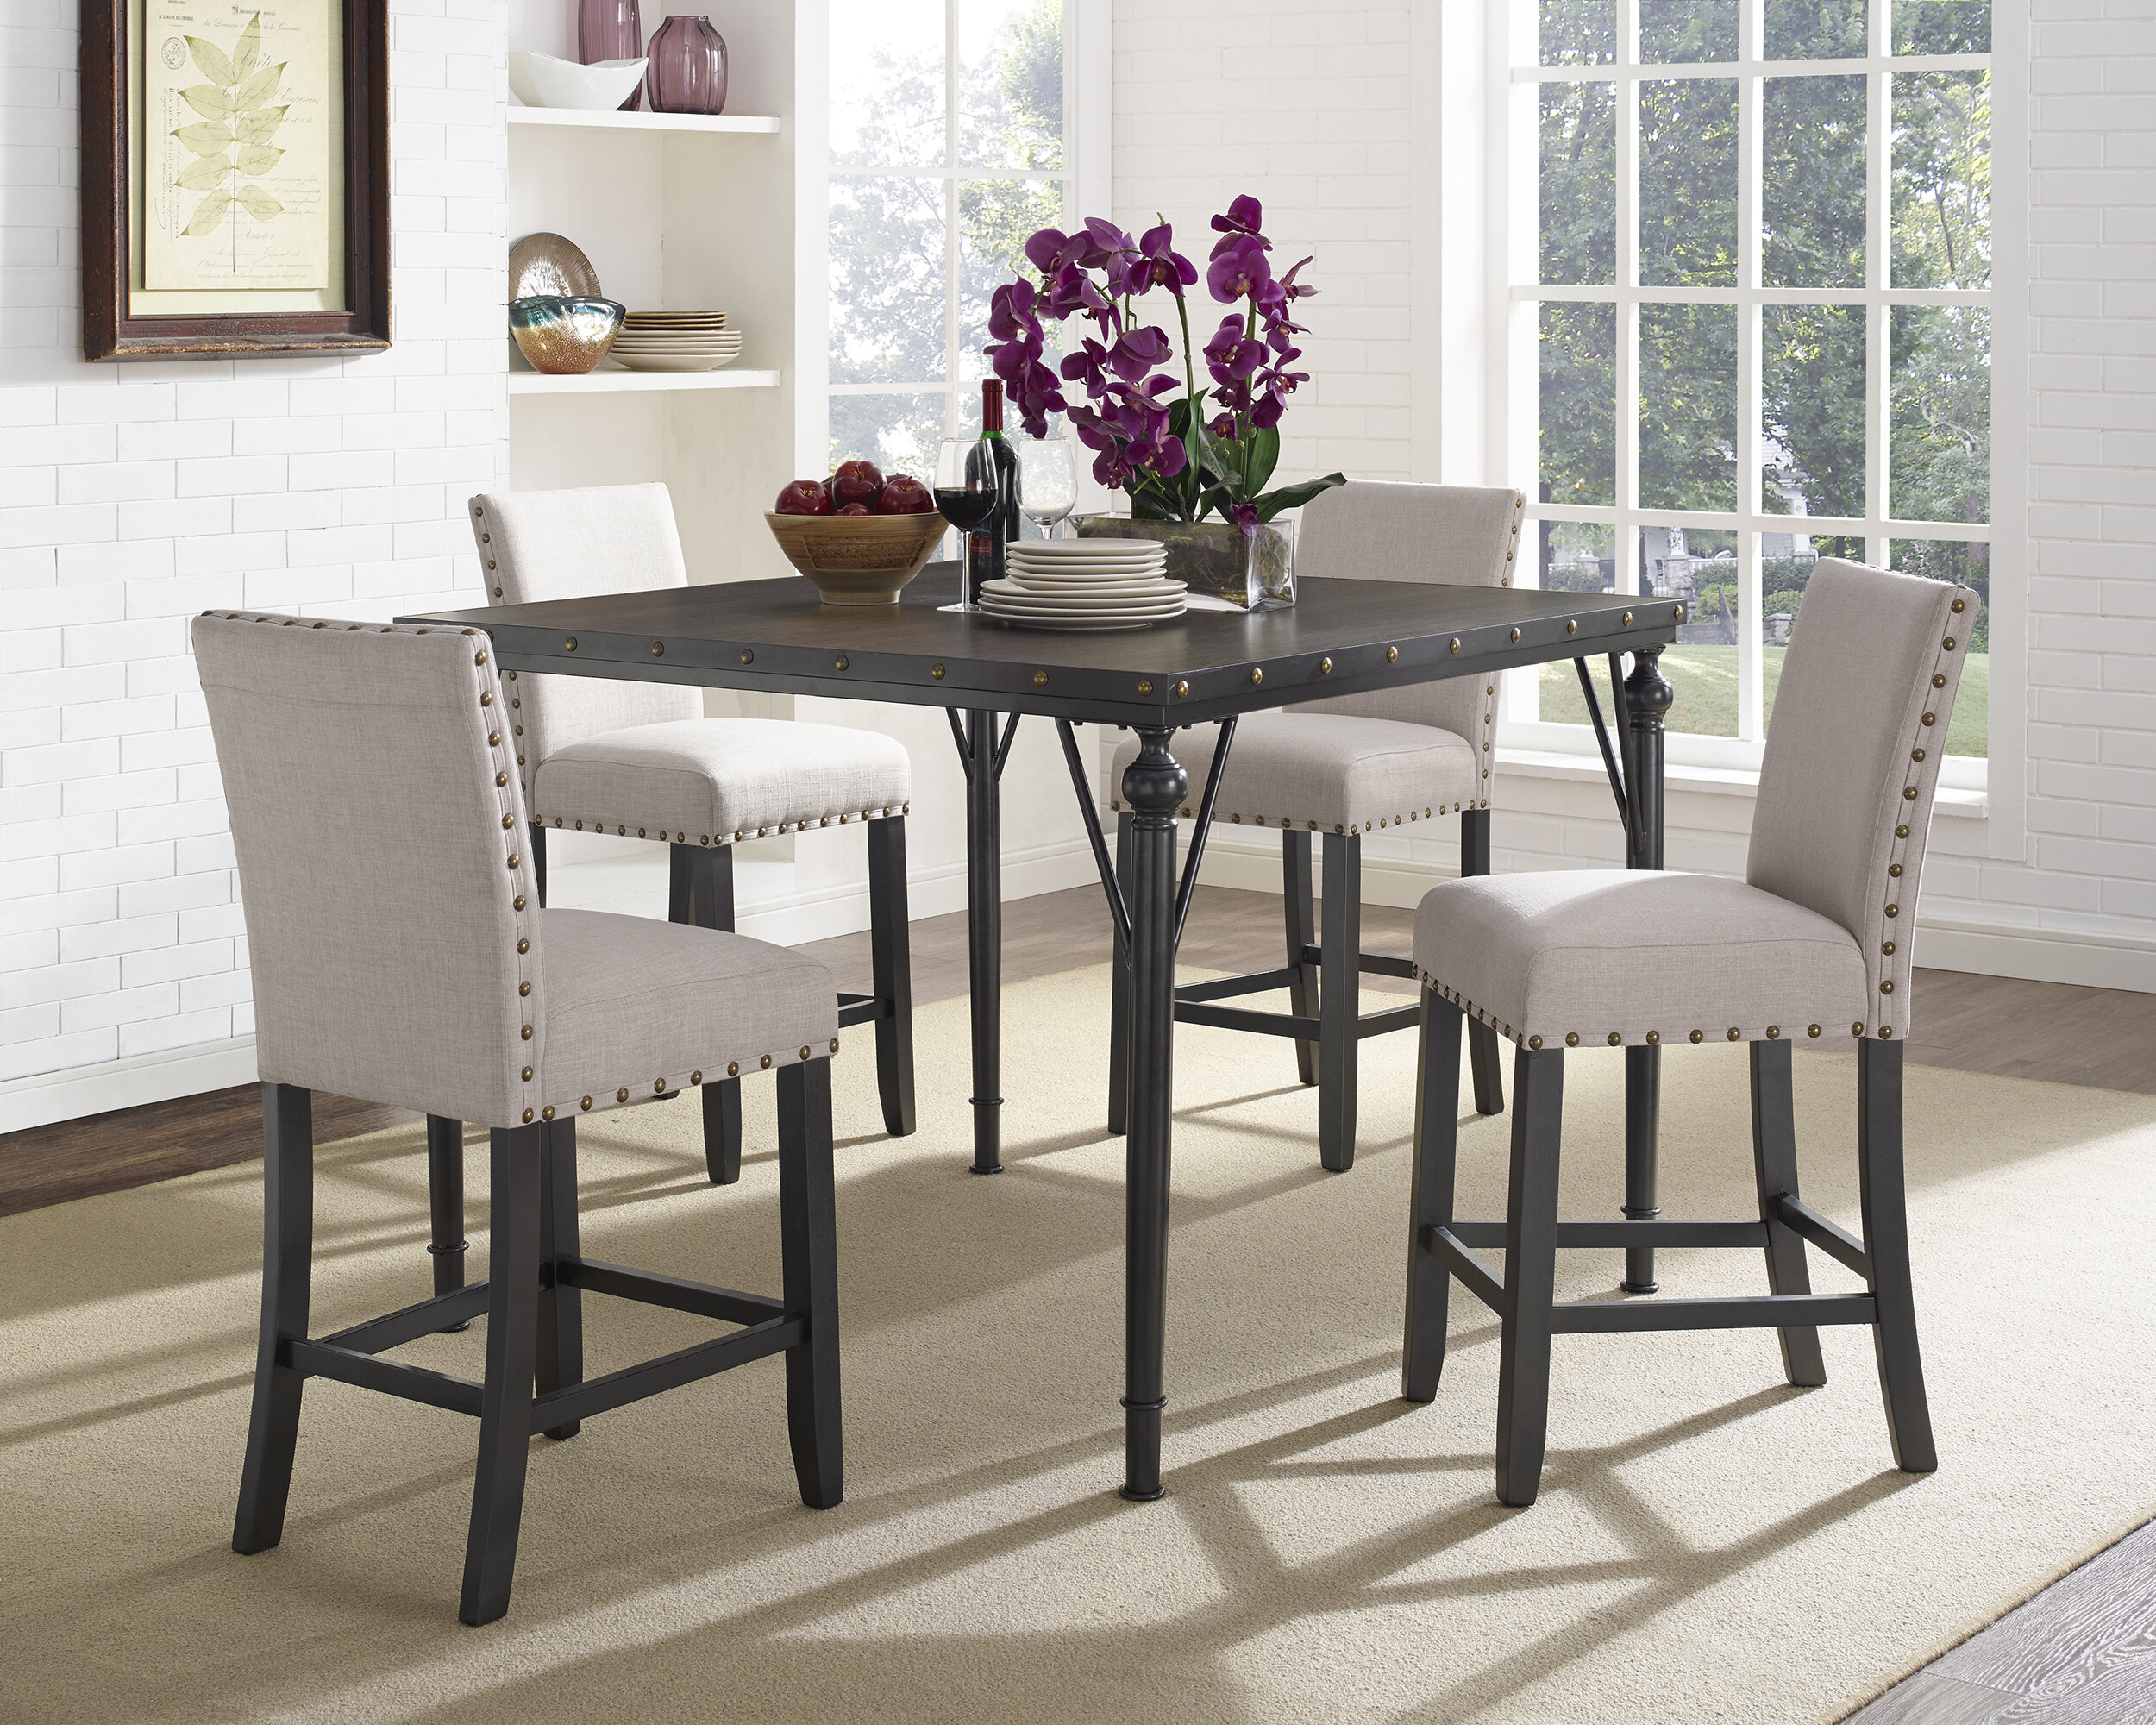 Greyleigh Haysi Wood Counter Height 5 Piece Dining Set With Fabric Nailhead Chairs Reviews